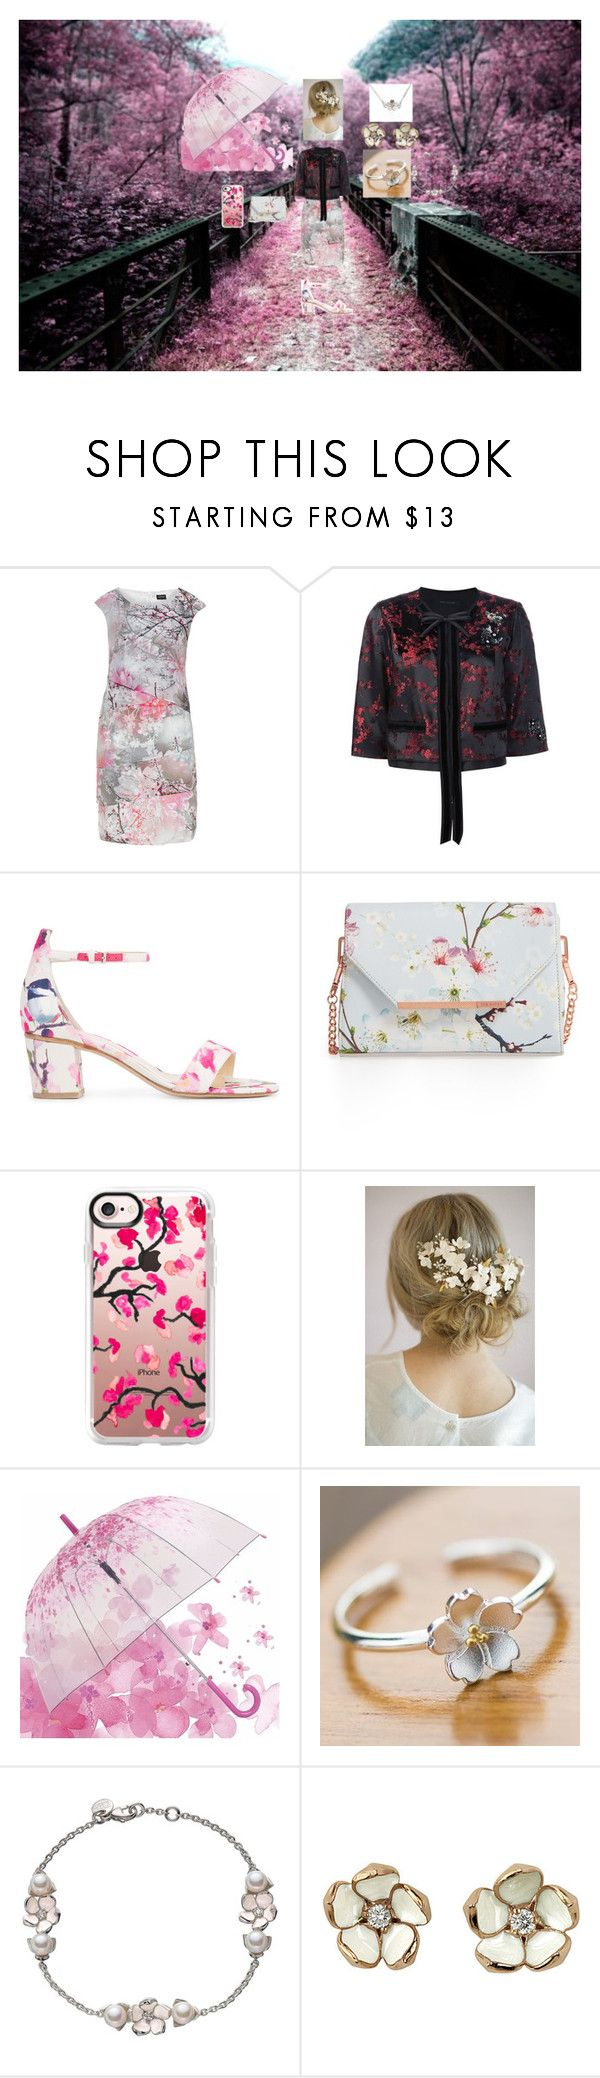 """cherry blossoms"" by mhenneberry on Polyvore featuring Hermann Lange, Marc Jacobs, Monique Lhuillier, Ted Baker, Casetify, Twigs & Honey and Shaun Leane"